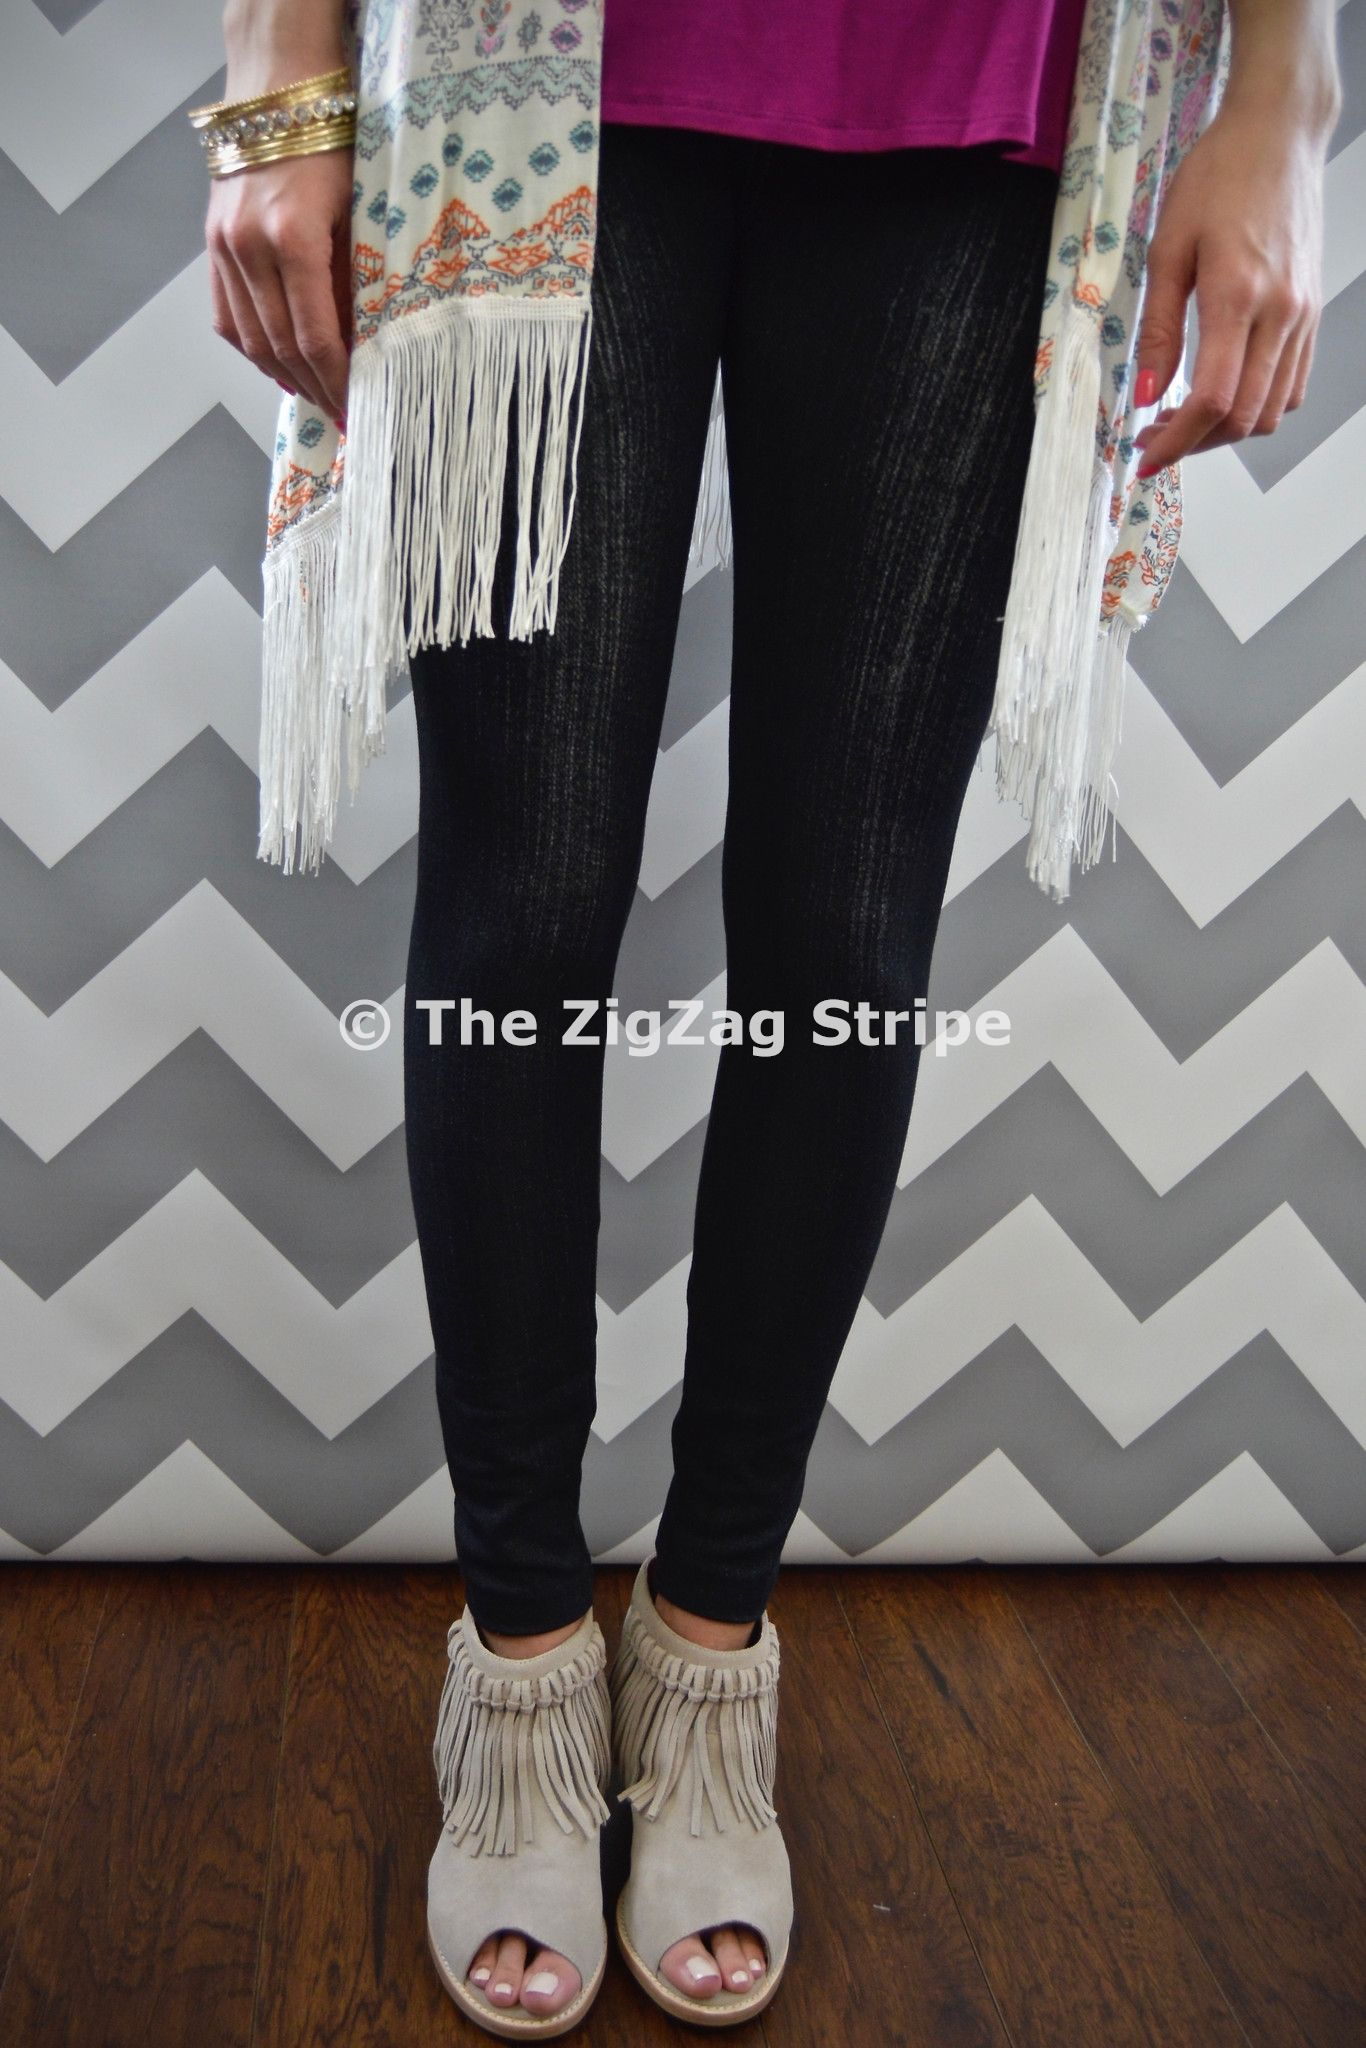 Black Jean-Like Jeggings – The ZigZag Stripe. Use coupon code ZZS72 to save 10%, and shipping is free! Zigzagstripe.com